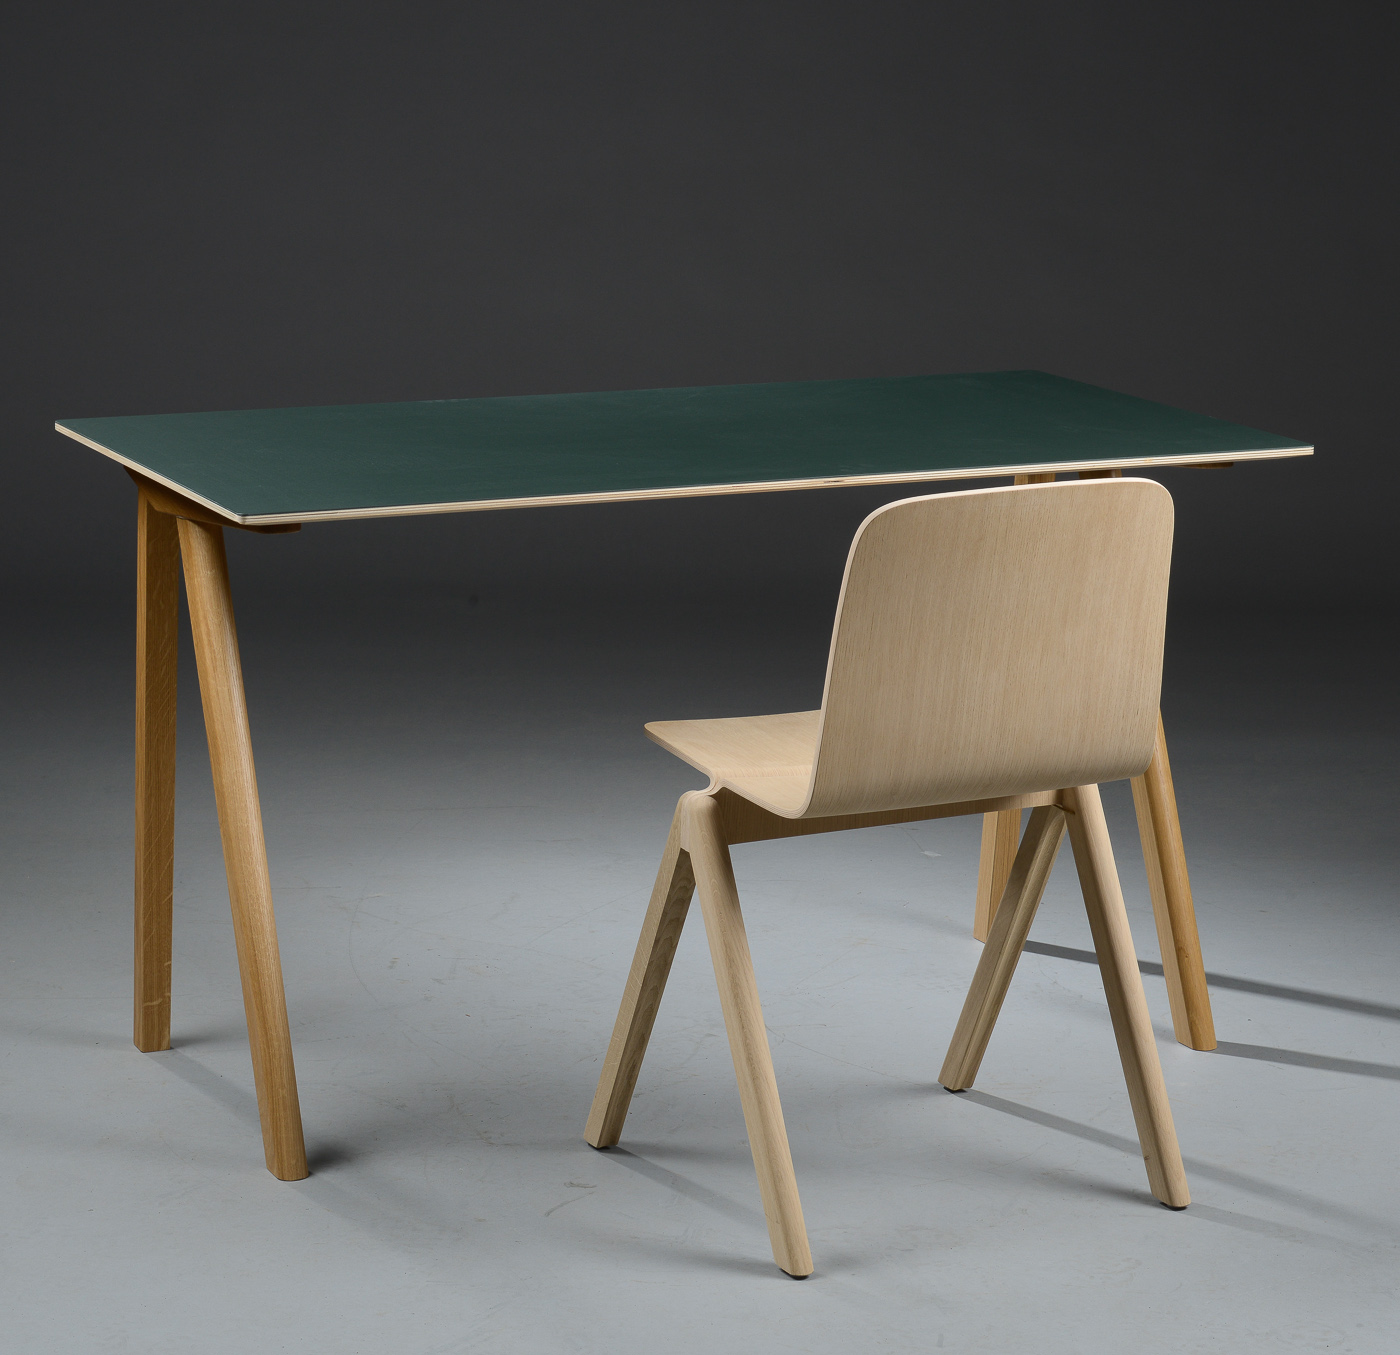 Click here to see a larger picture & Ronan u0026 Erwan Bouroullec for Hay. Skrivebord model Copenhagen Desk ...